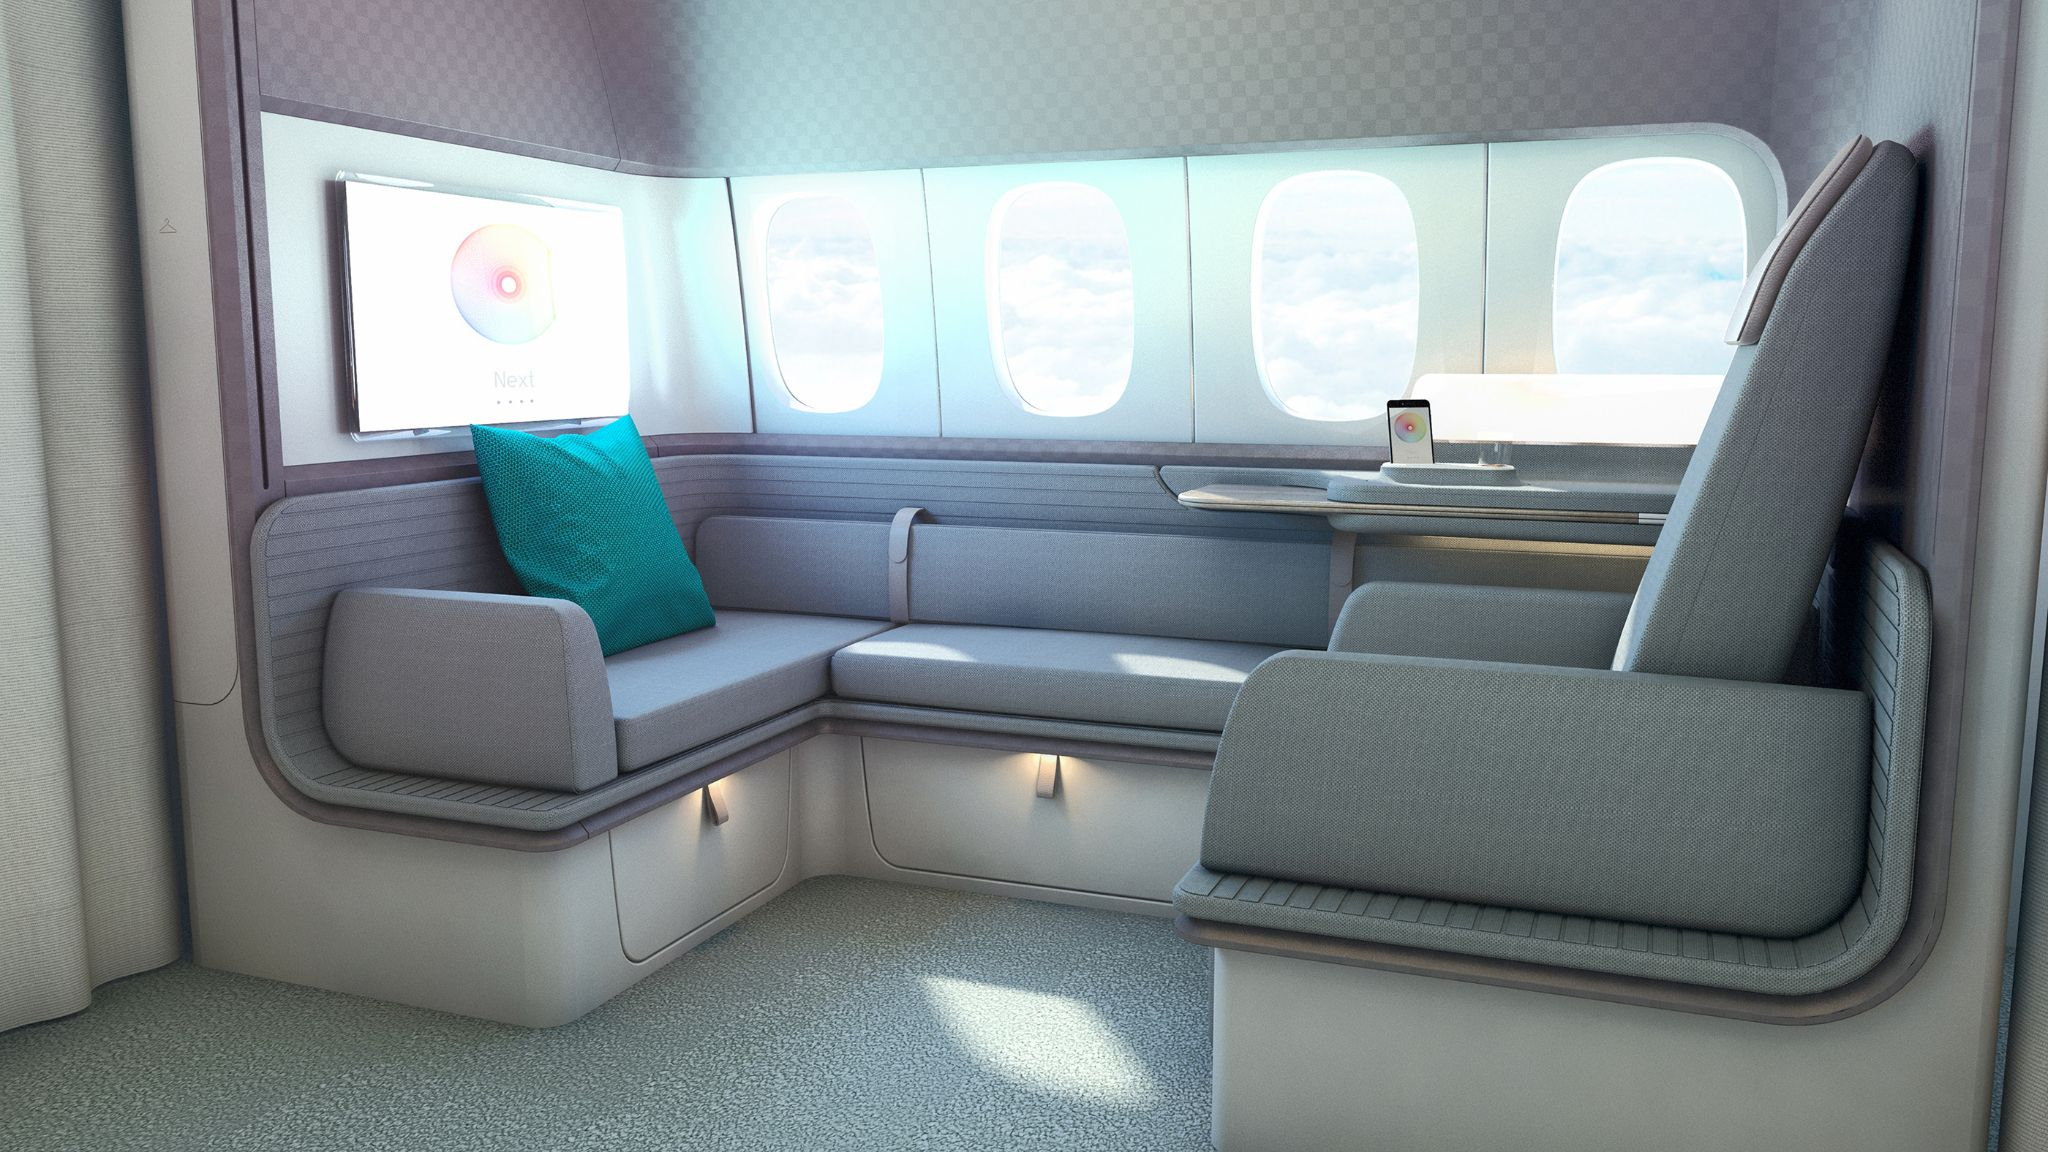 Concepts première classe Cathay Pacific OHLALAIR LE